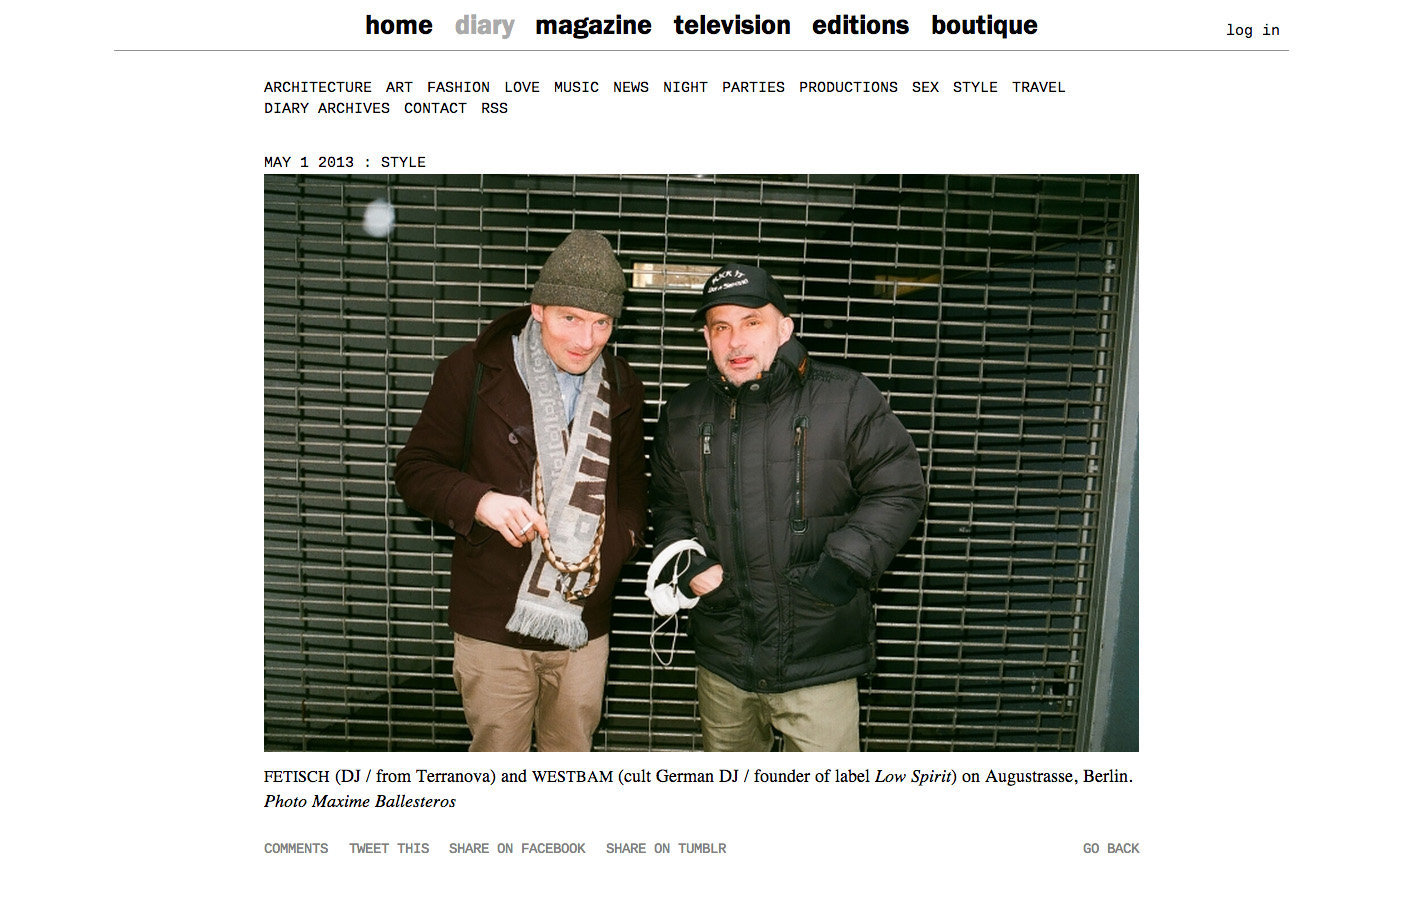 purple DIARY   Fetisch  DJ   from Terranova  and Westbam  cult German DJ   founder of label Low Spir